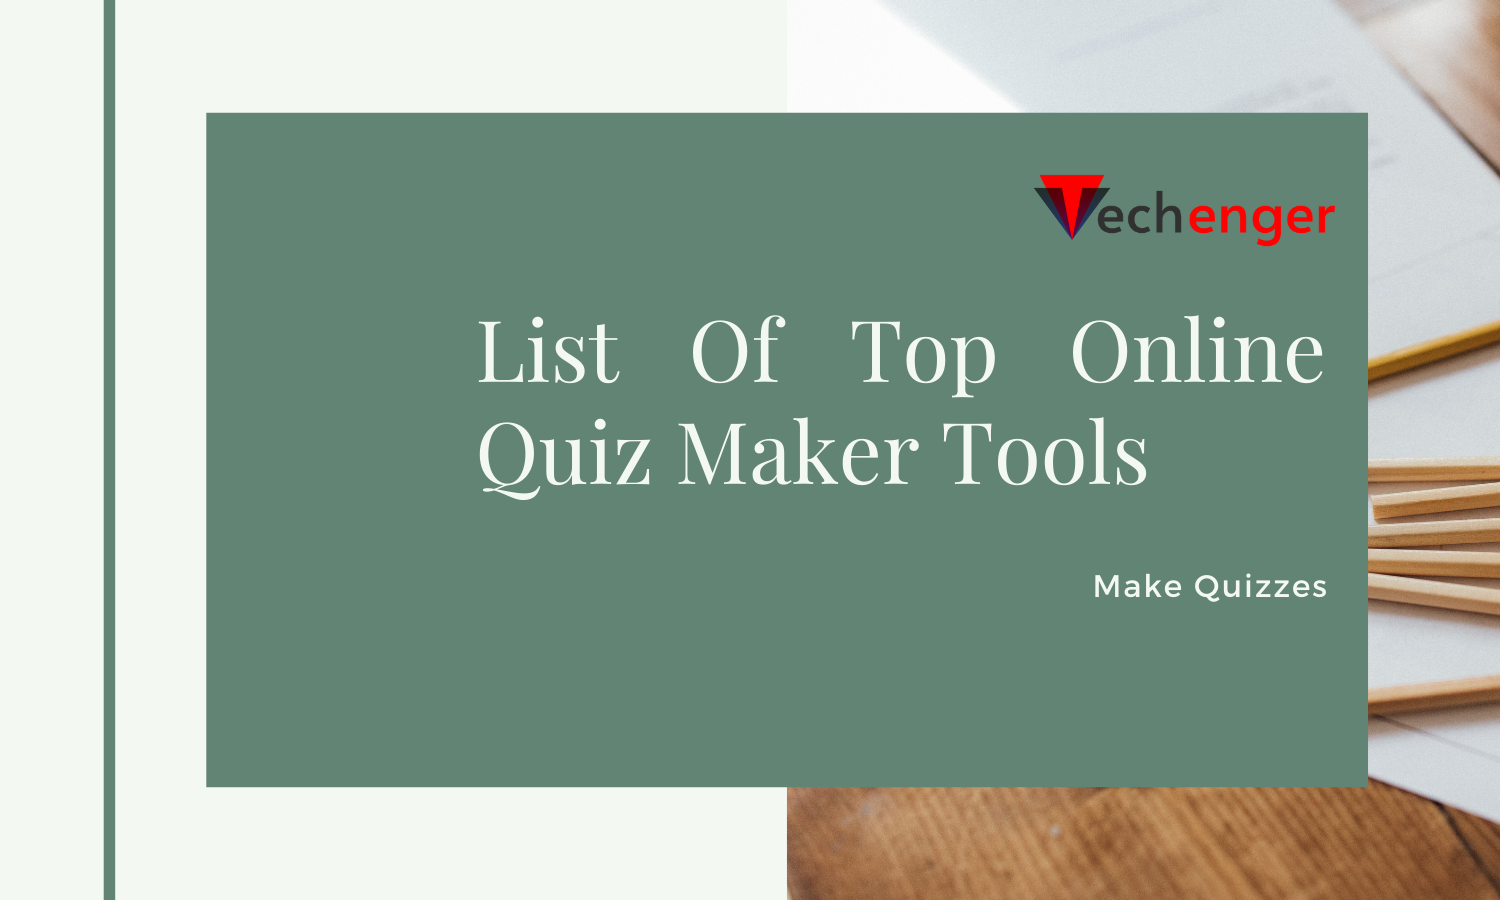 Updated List Of Top Online Quiz Maker Tools To Make Quizzes